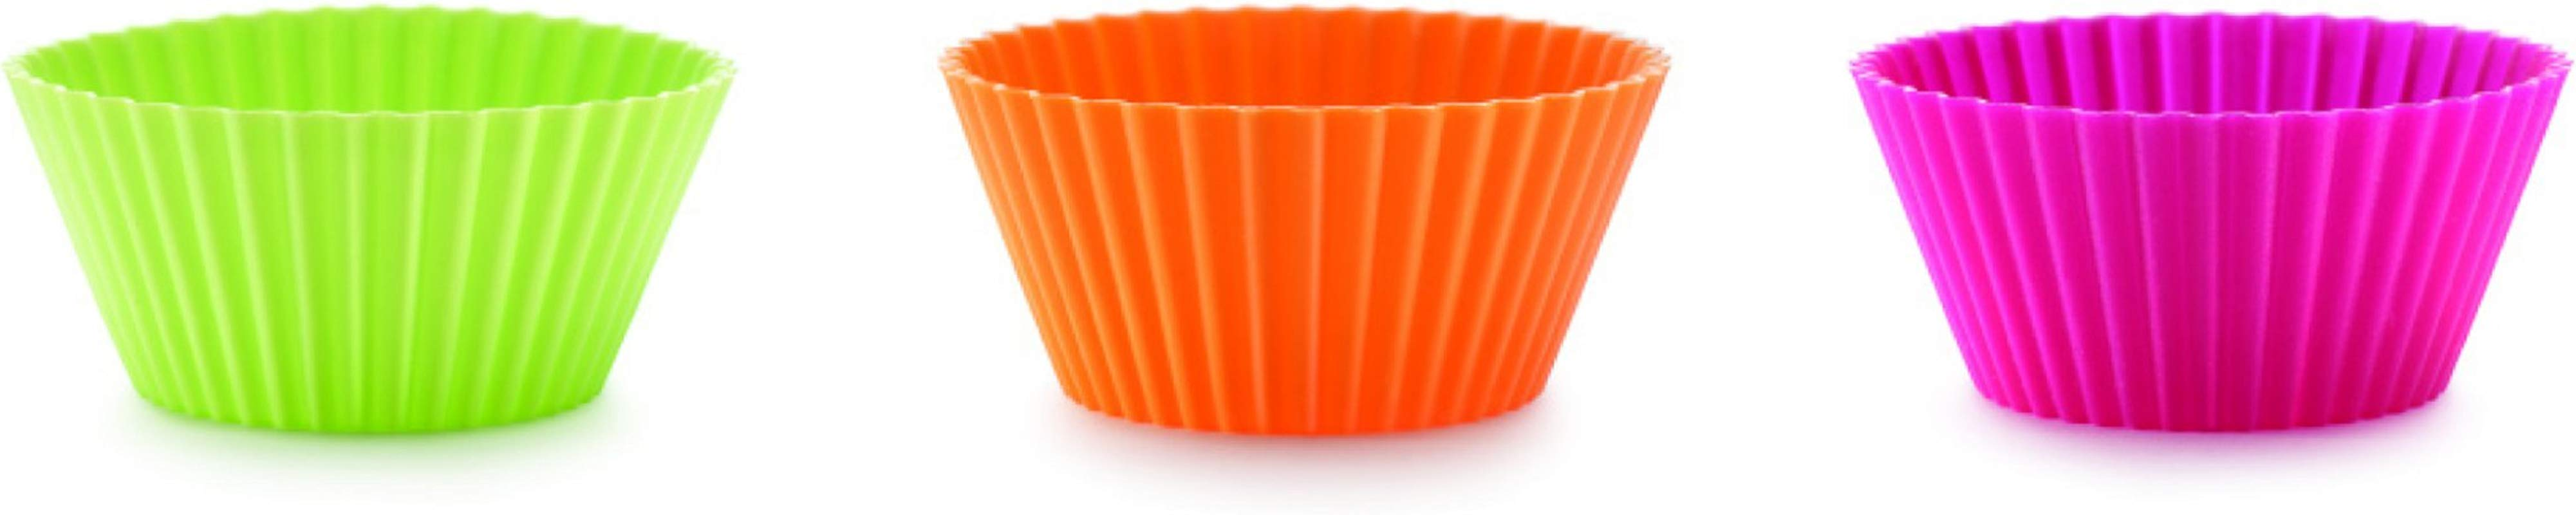 Lekue 12 Piece Muffin Cup Set Assorted